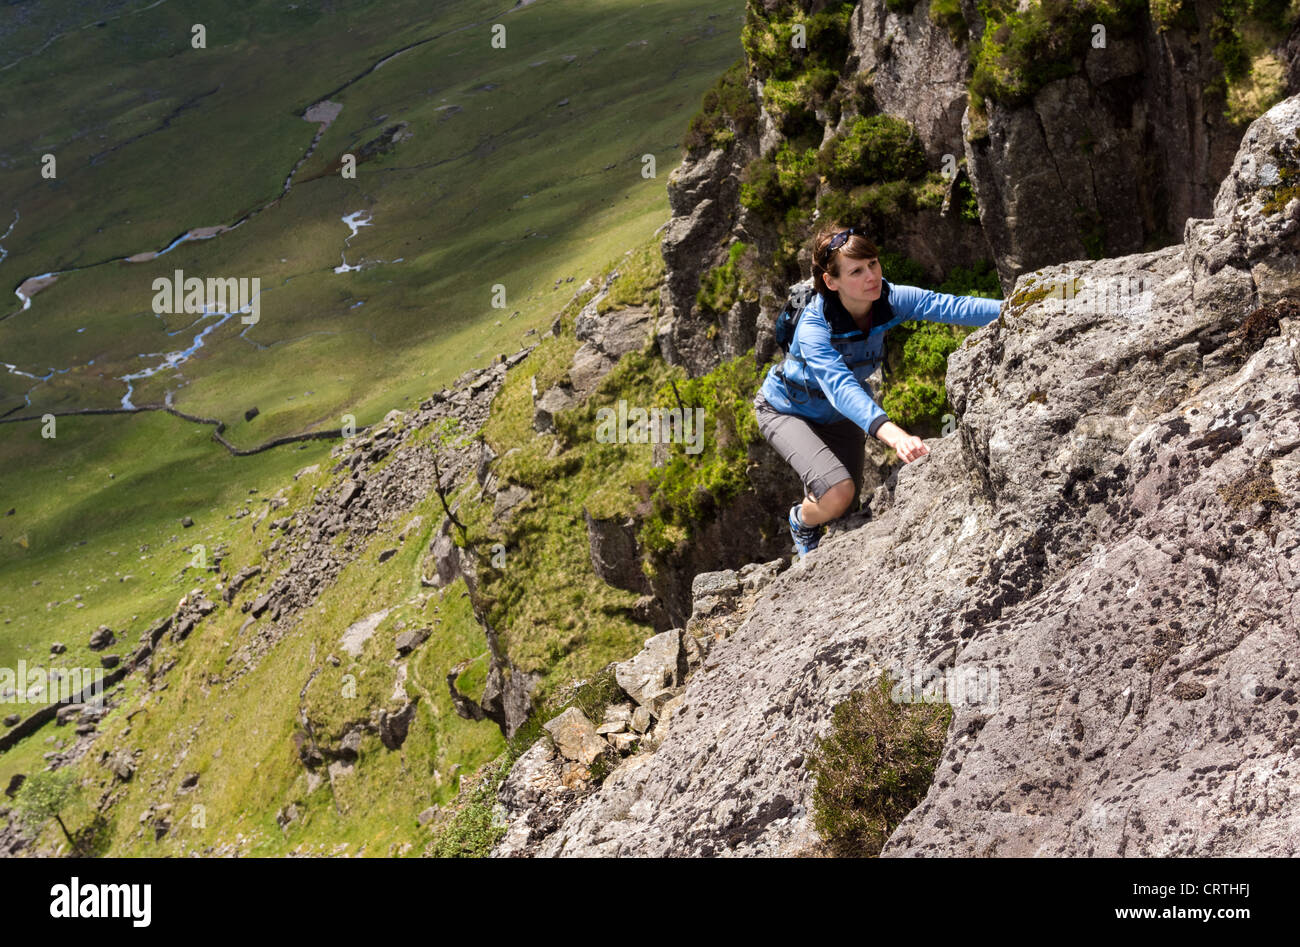 A rock scrambler on Gillercombe Crag (Rabbits Trod scramble) on Grey Knotts in the Lake District, UK. - Stock Image